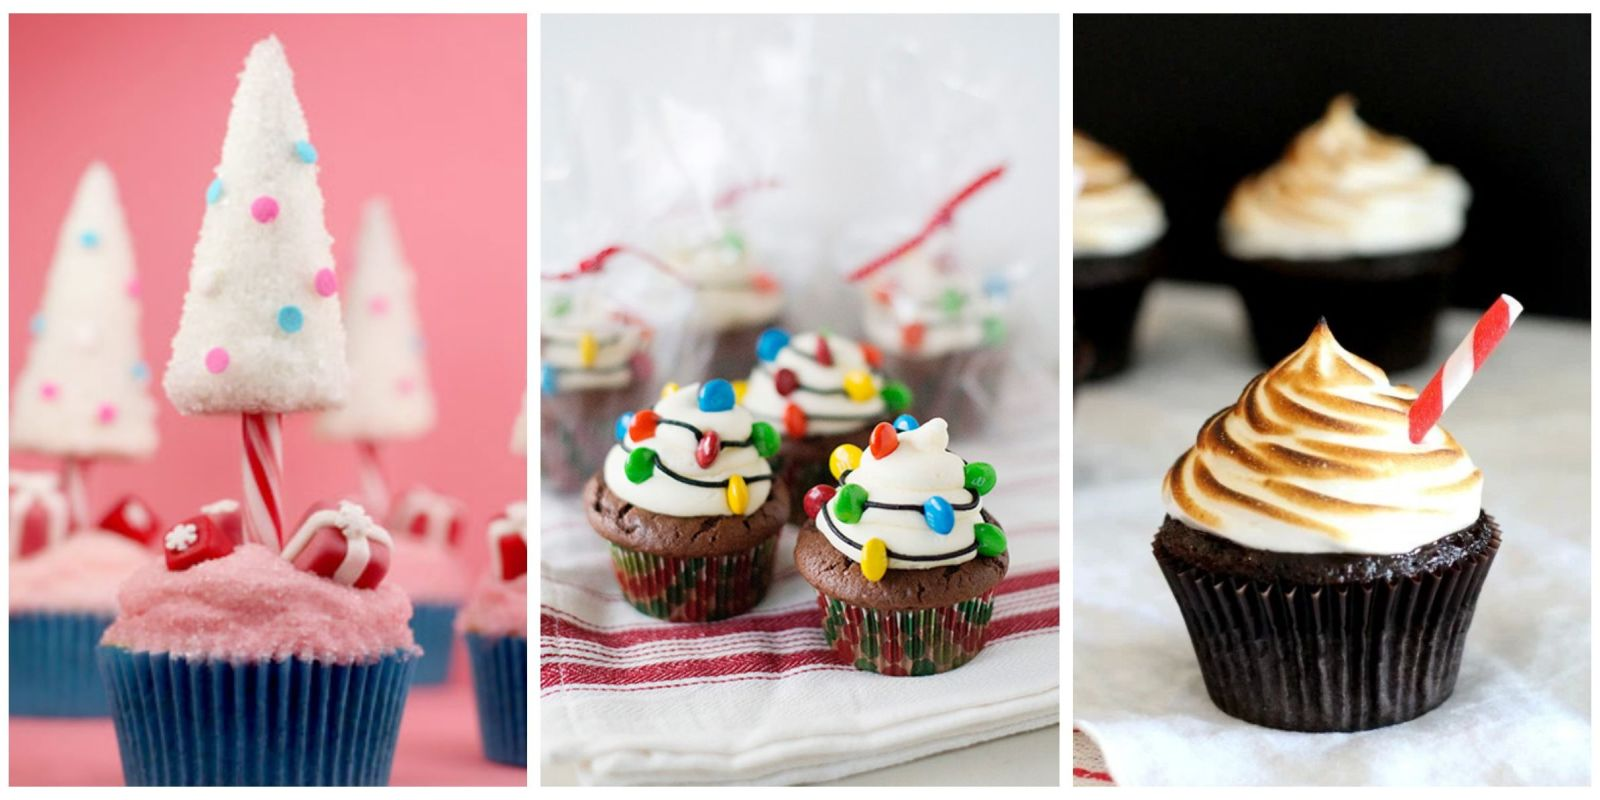 Cute Bathroom Decorating Ideas 20 Adorable Cupcakes To Bake For Christmas Recipes For